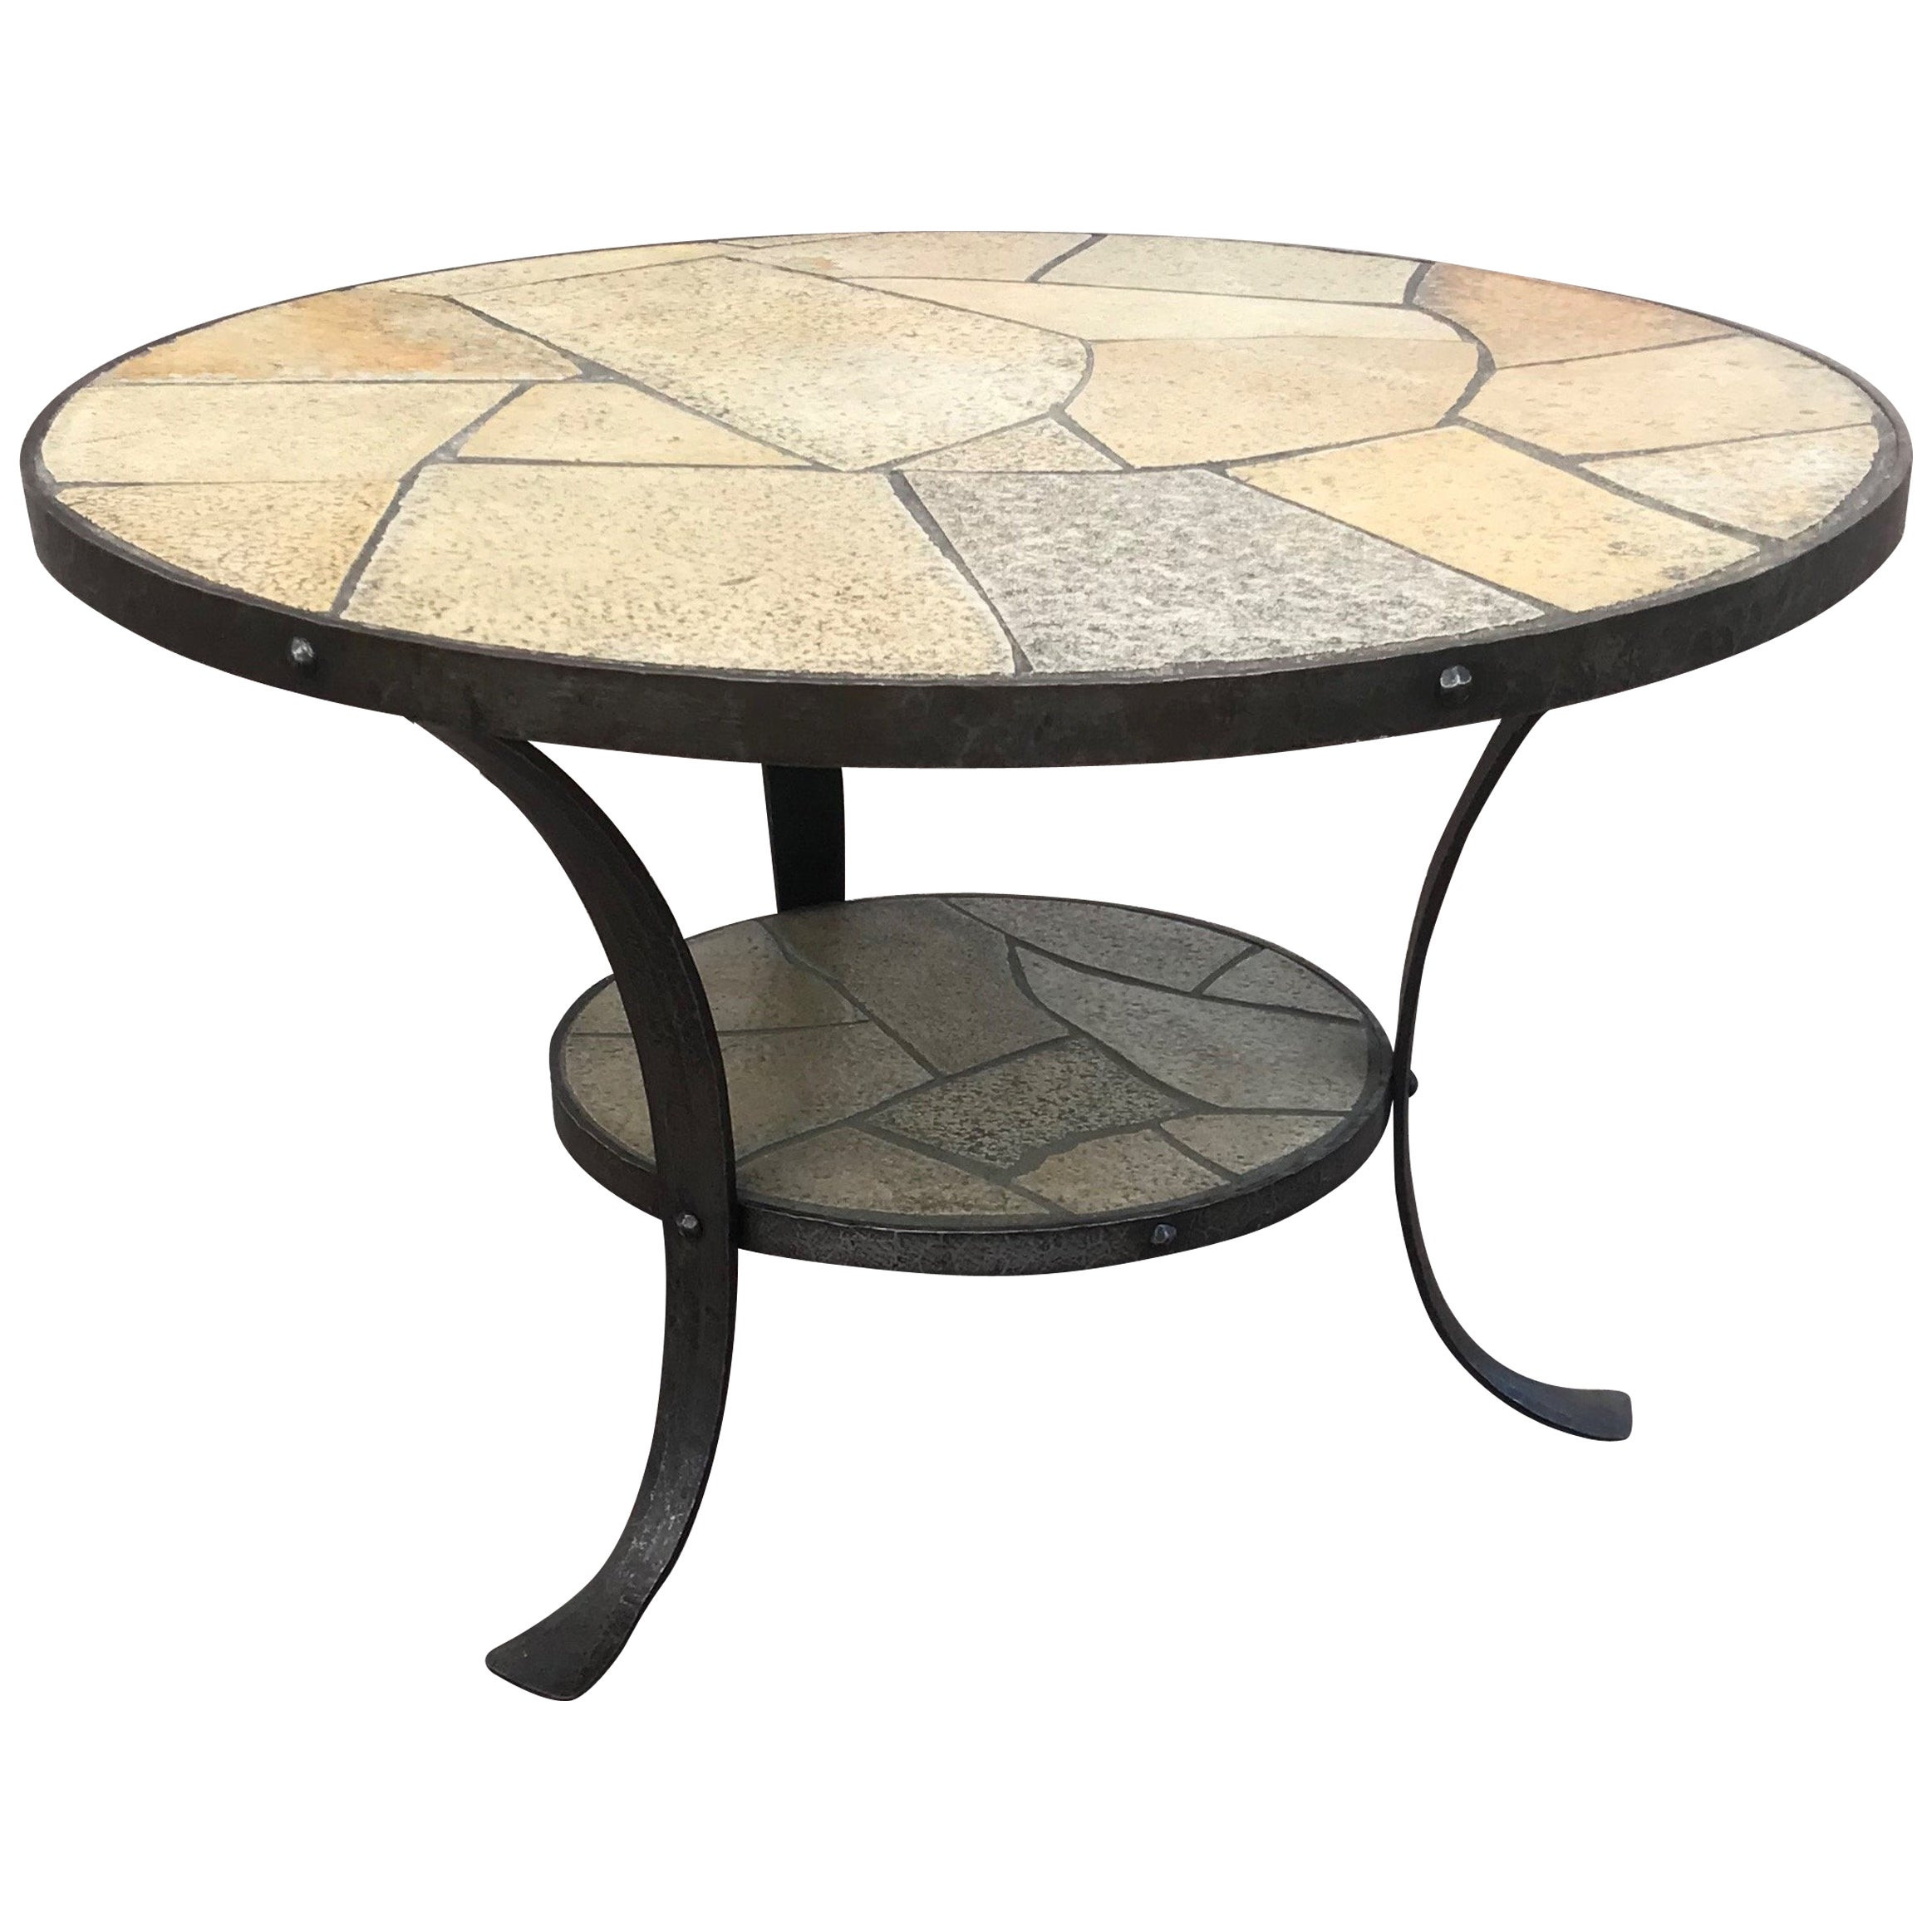 Perfect Size Midcentury Modern Wrought Iron Base & Slate Stone Top Coffee Table